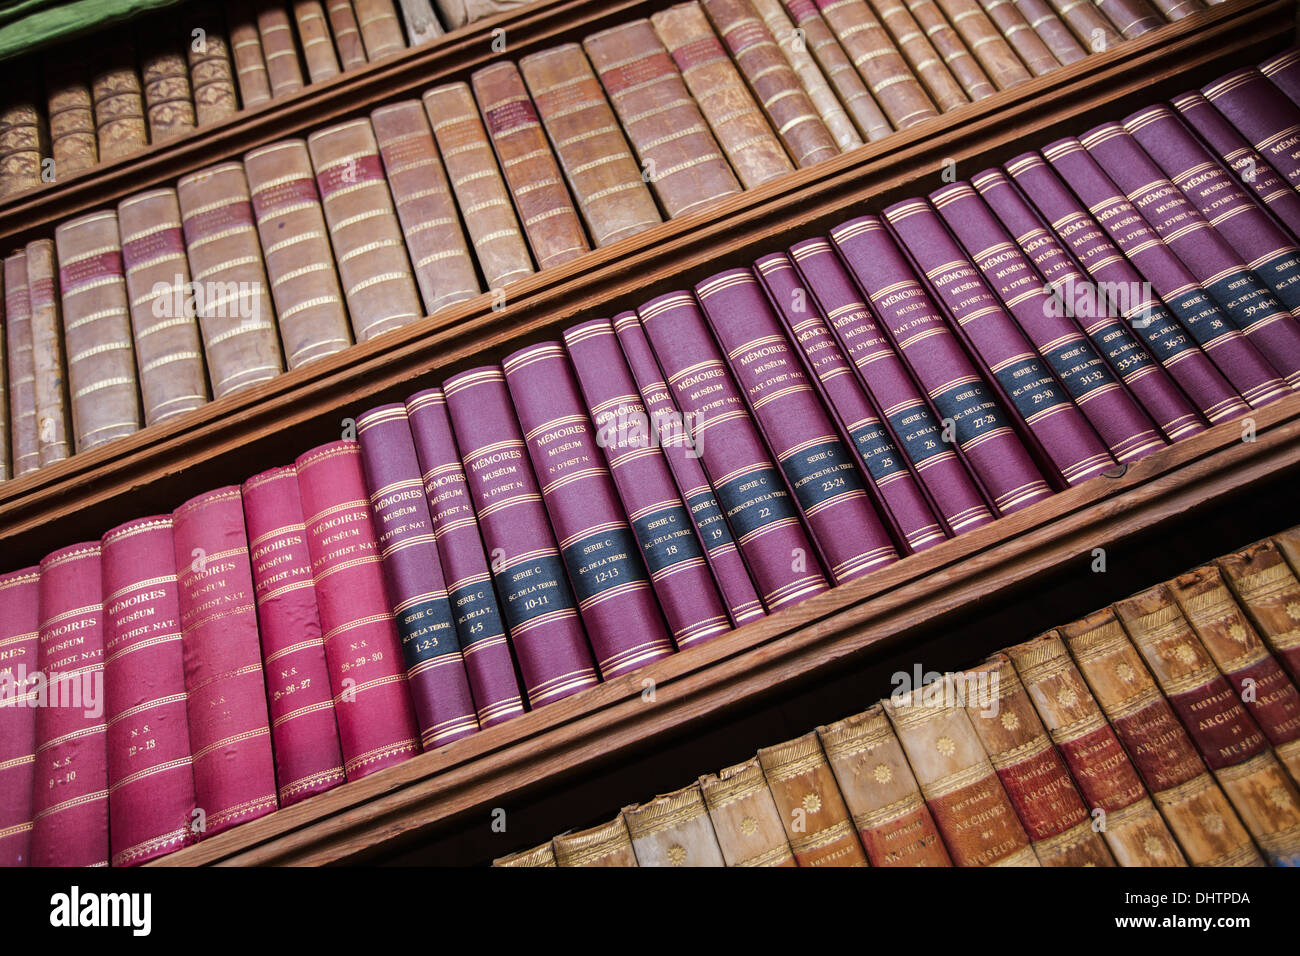 Netherlands, Haarlem, Teylers Museum, open to the public since 1784. View on bookshelves in the oval room - Stock Image